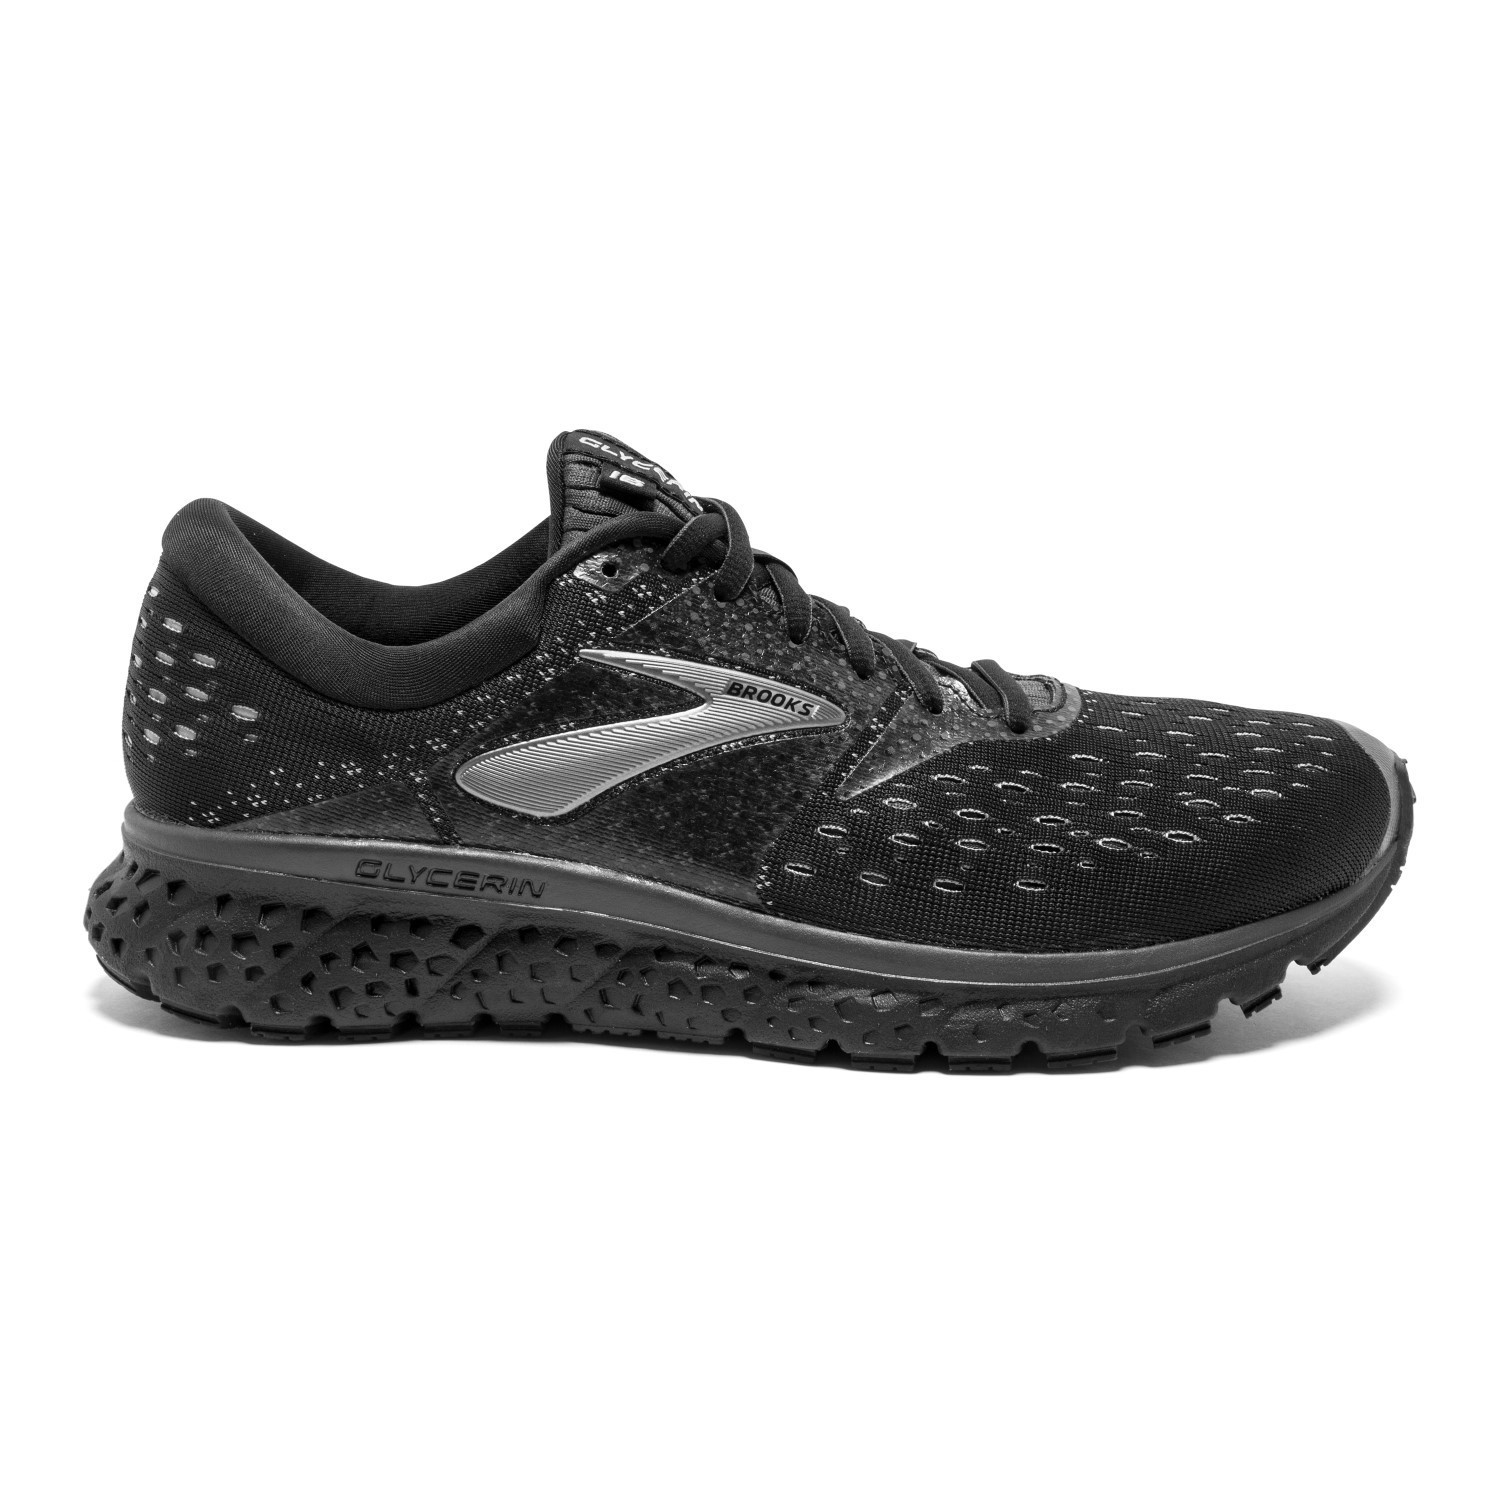 e18e59b69f1 Brooks Glycerin 16 - Mens Running Shoes - Black Ebony